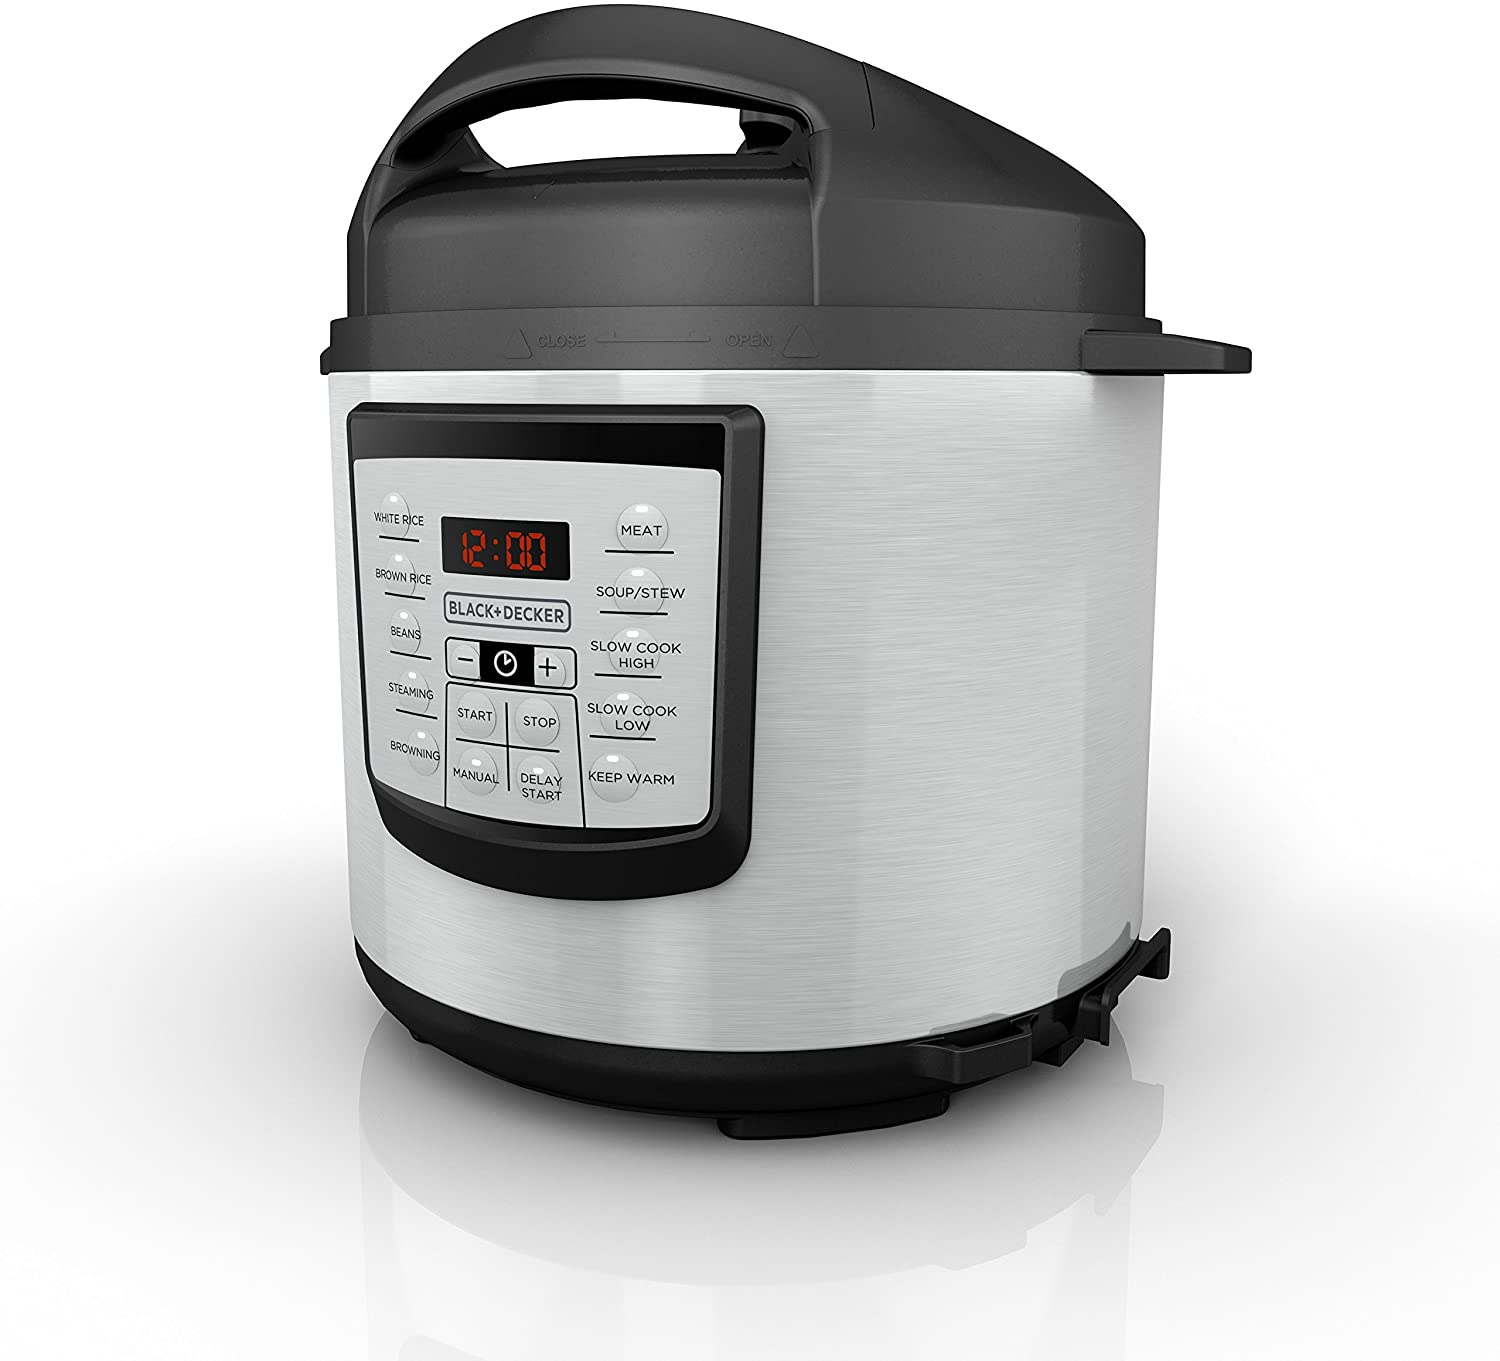 Black+Decker pressure cooker